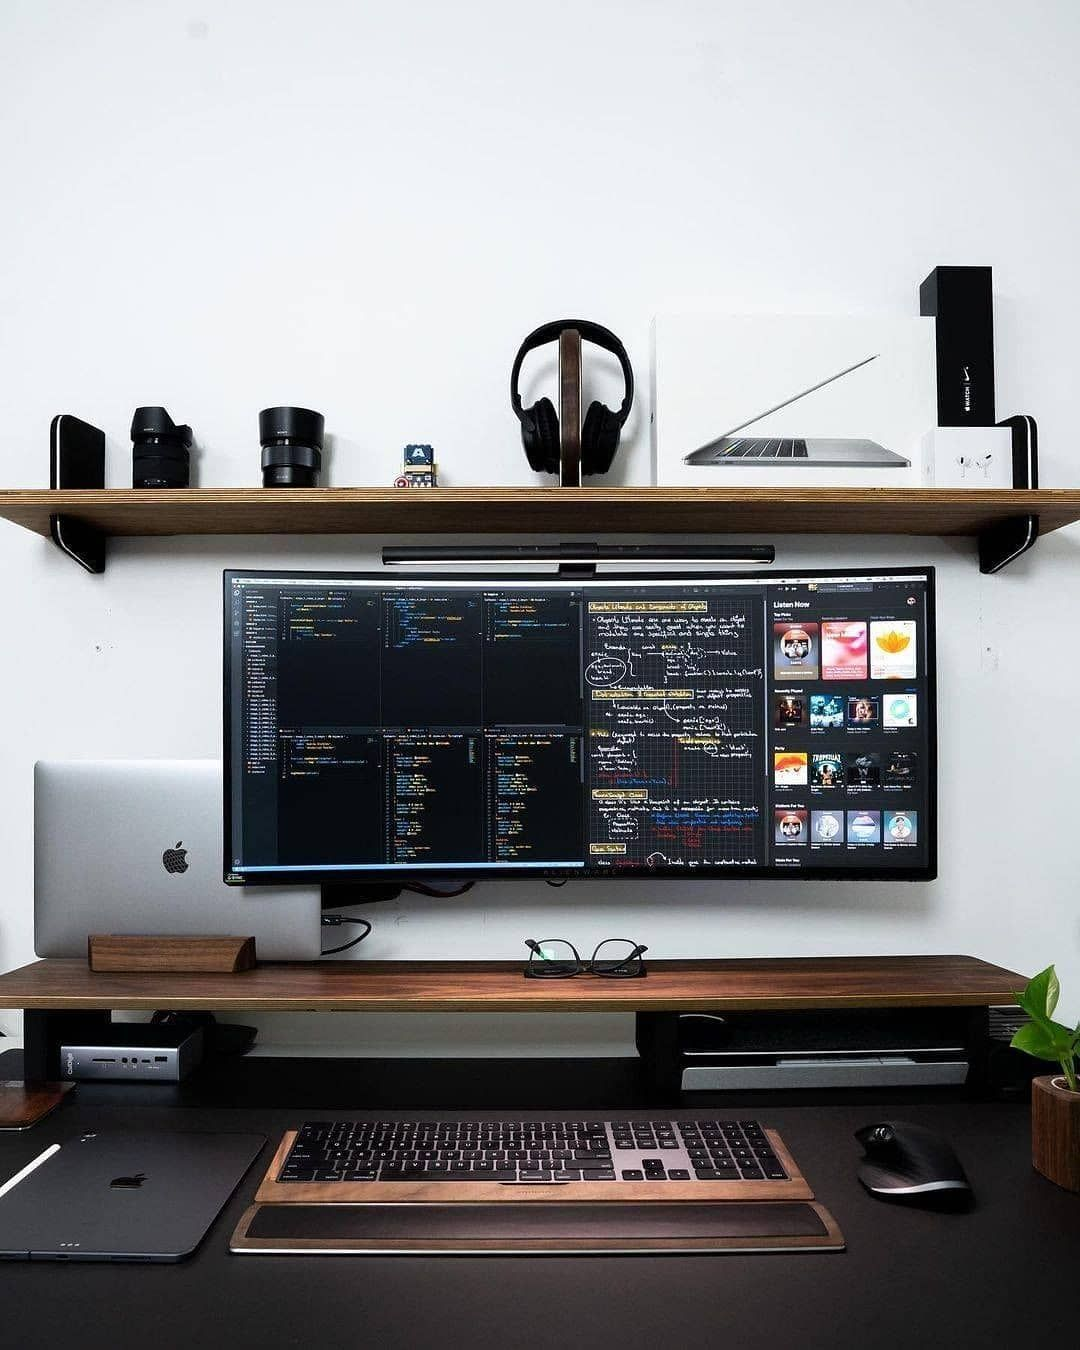 Minimal Home Setups On Instagram What Do You Think Rate This Setup 1 10 In The Comments Tag A Fr Home Office Setup Home Studio Setup Home Room Design